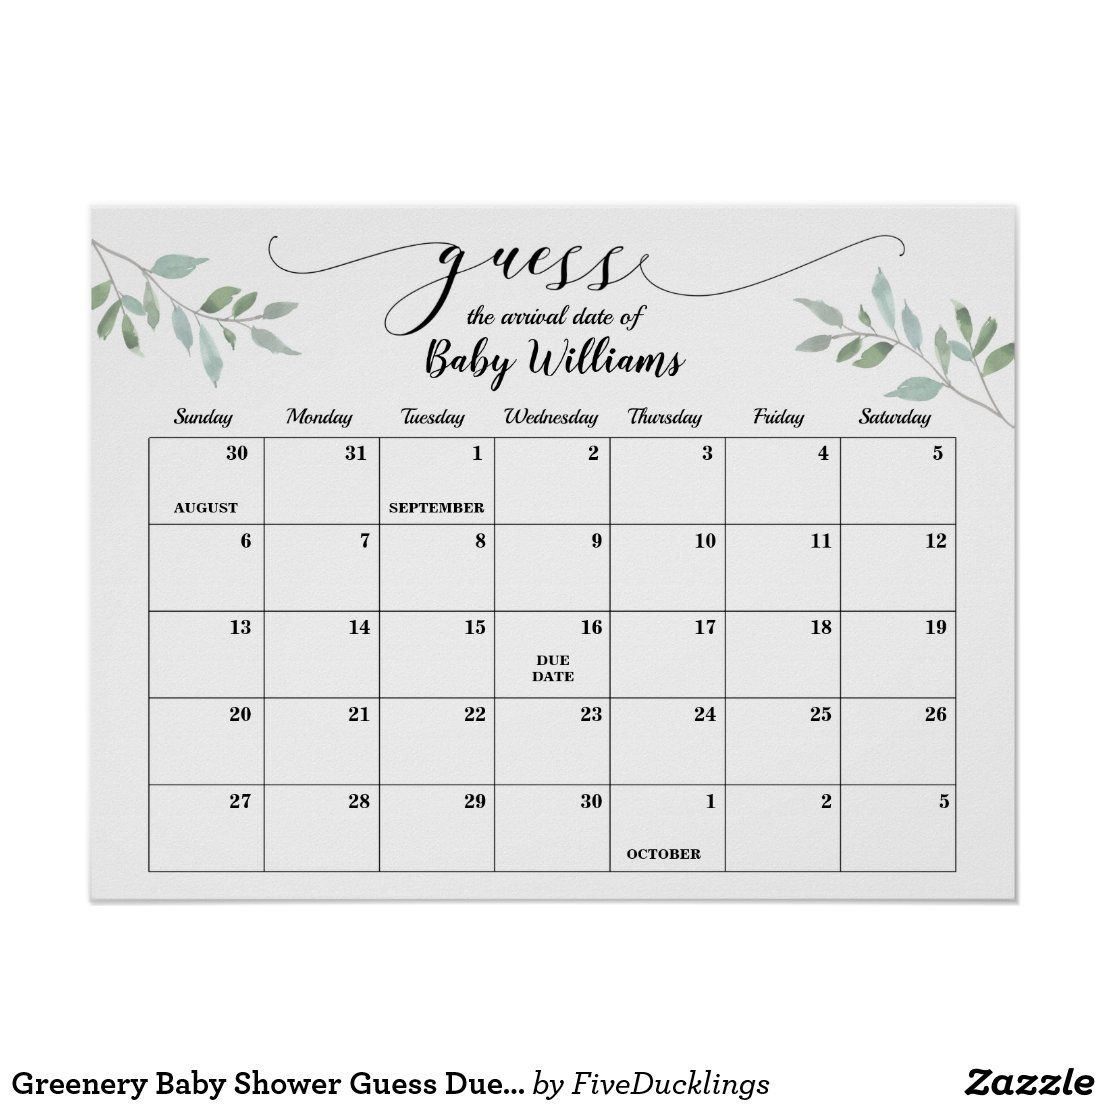 Greenery Baby Shower Guess Due Date Calendar Poster | Zazzle